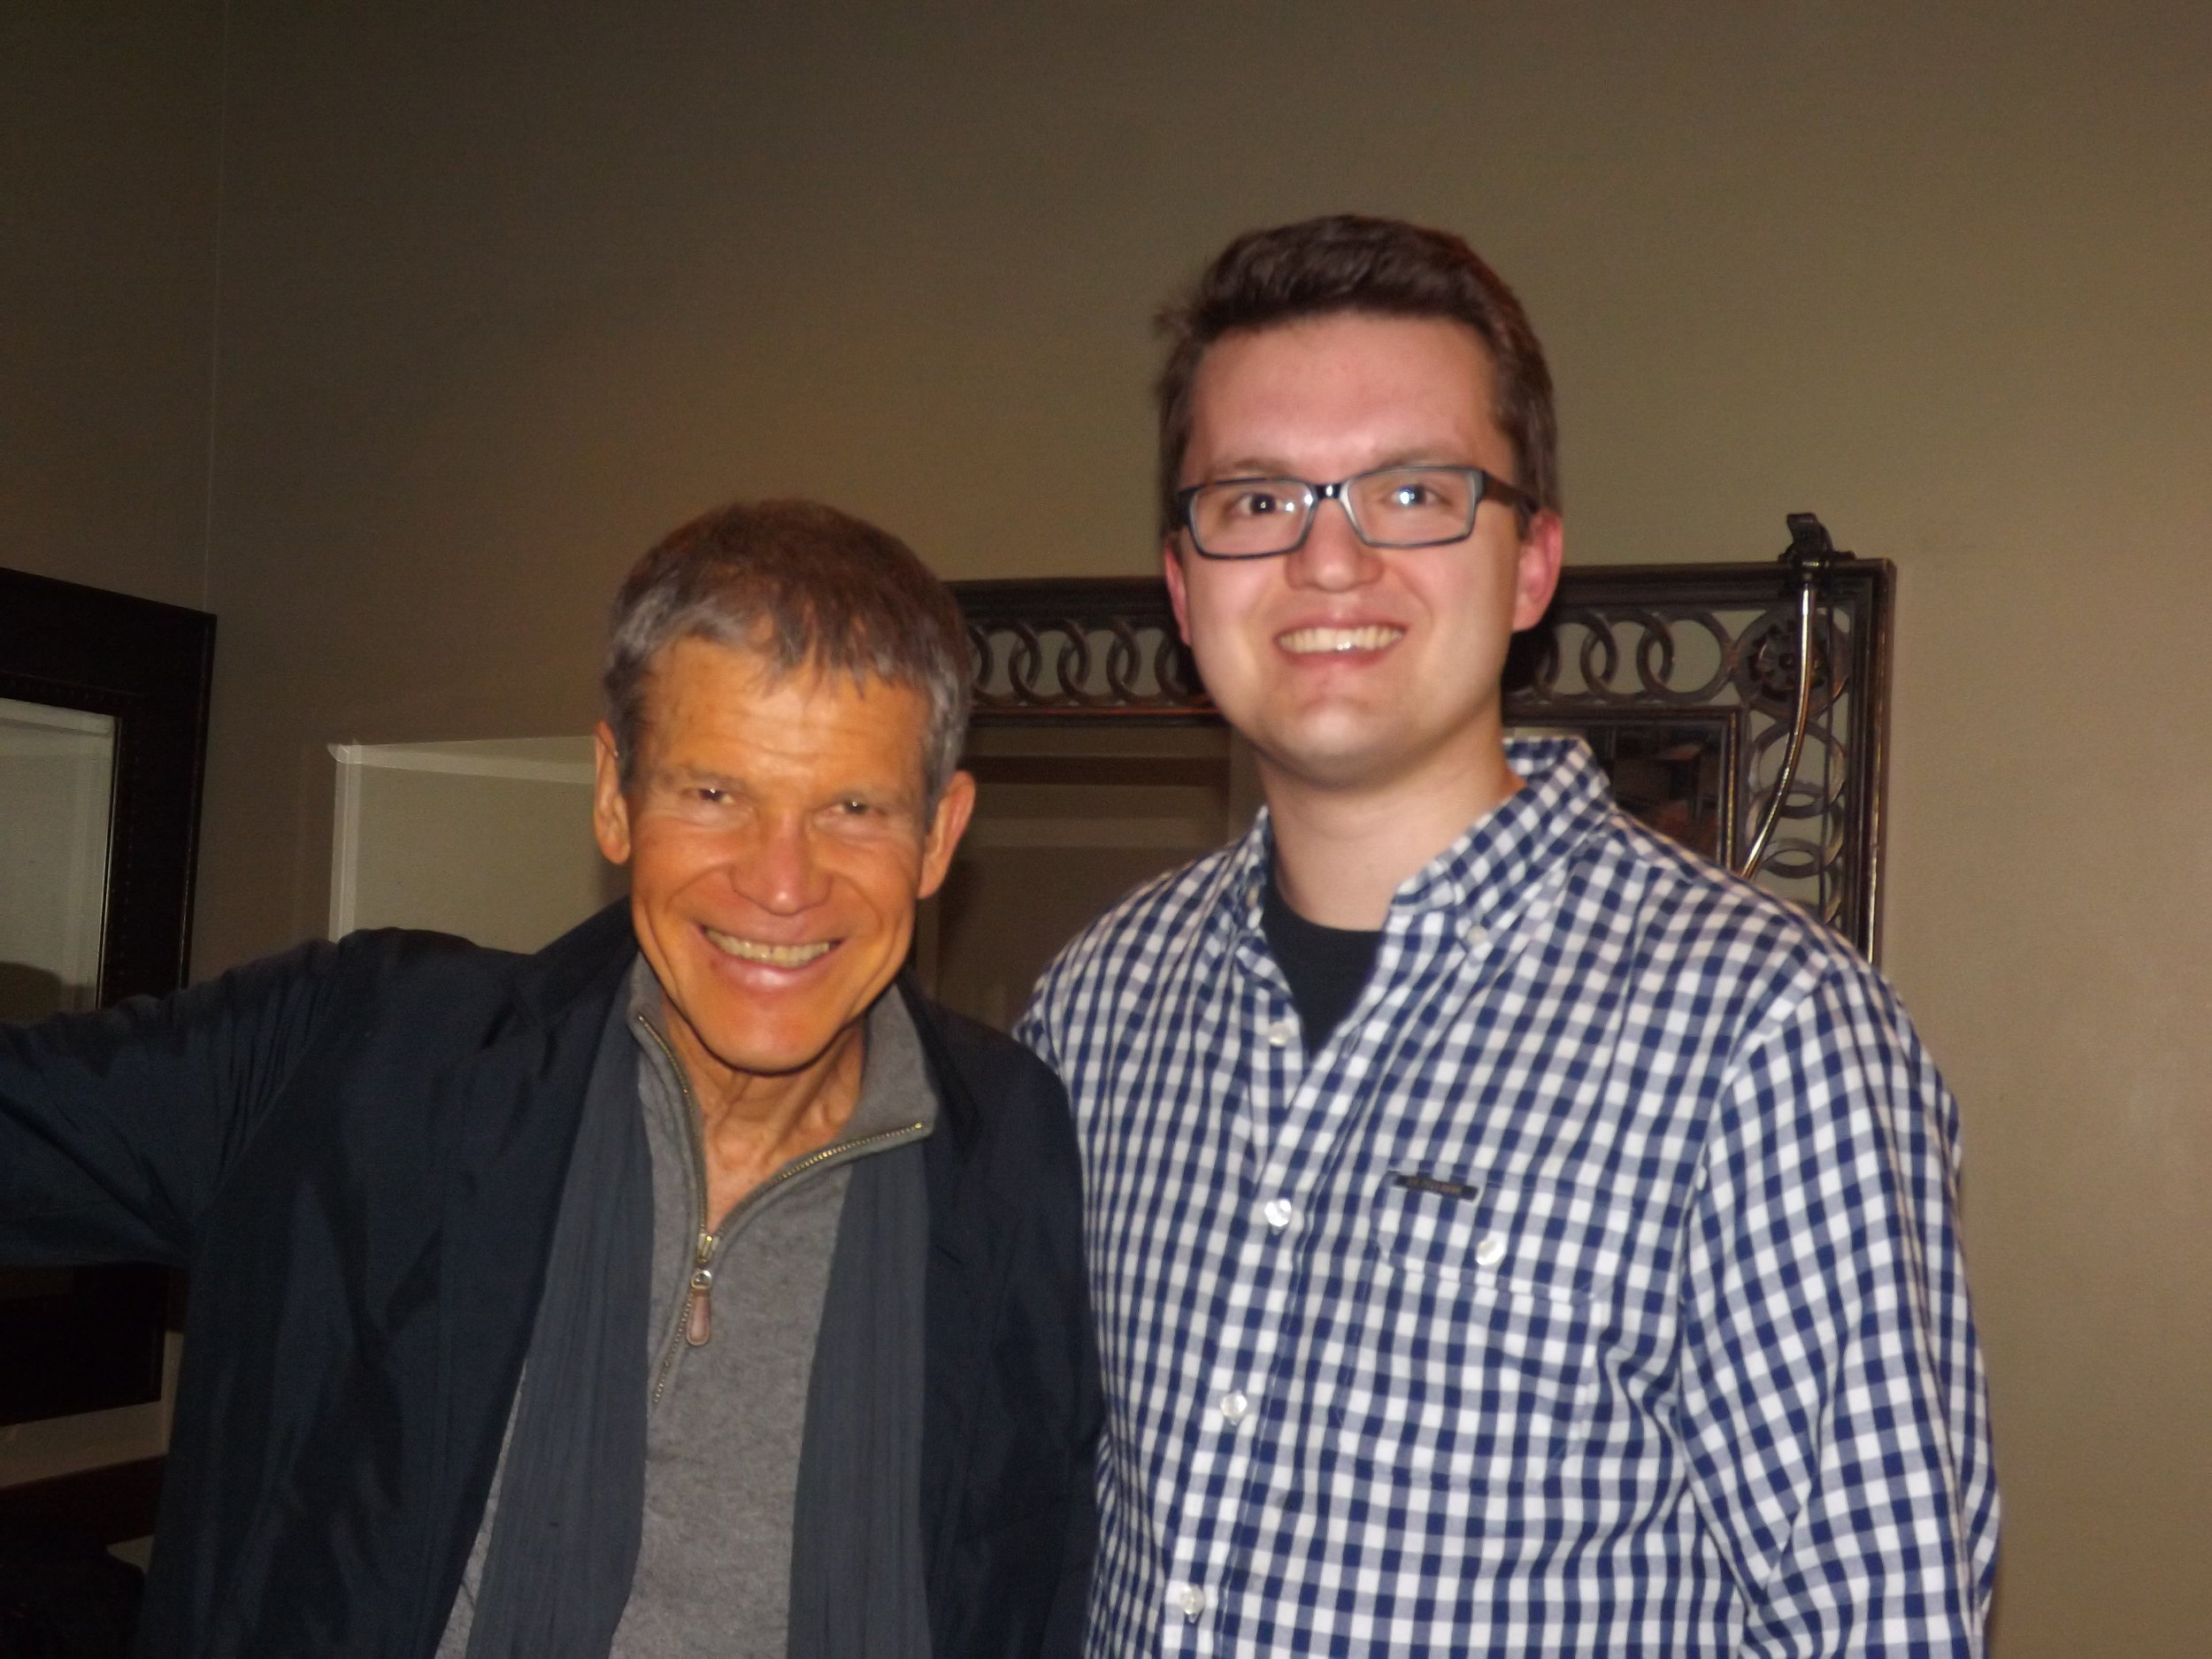 'Meeting my hero, sax legend David Sanborn who also overcame paralysis with music. He's been a big inspiration!'